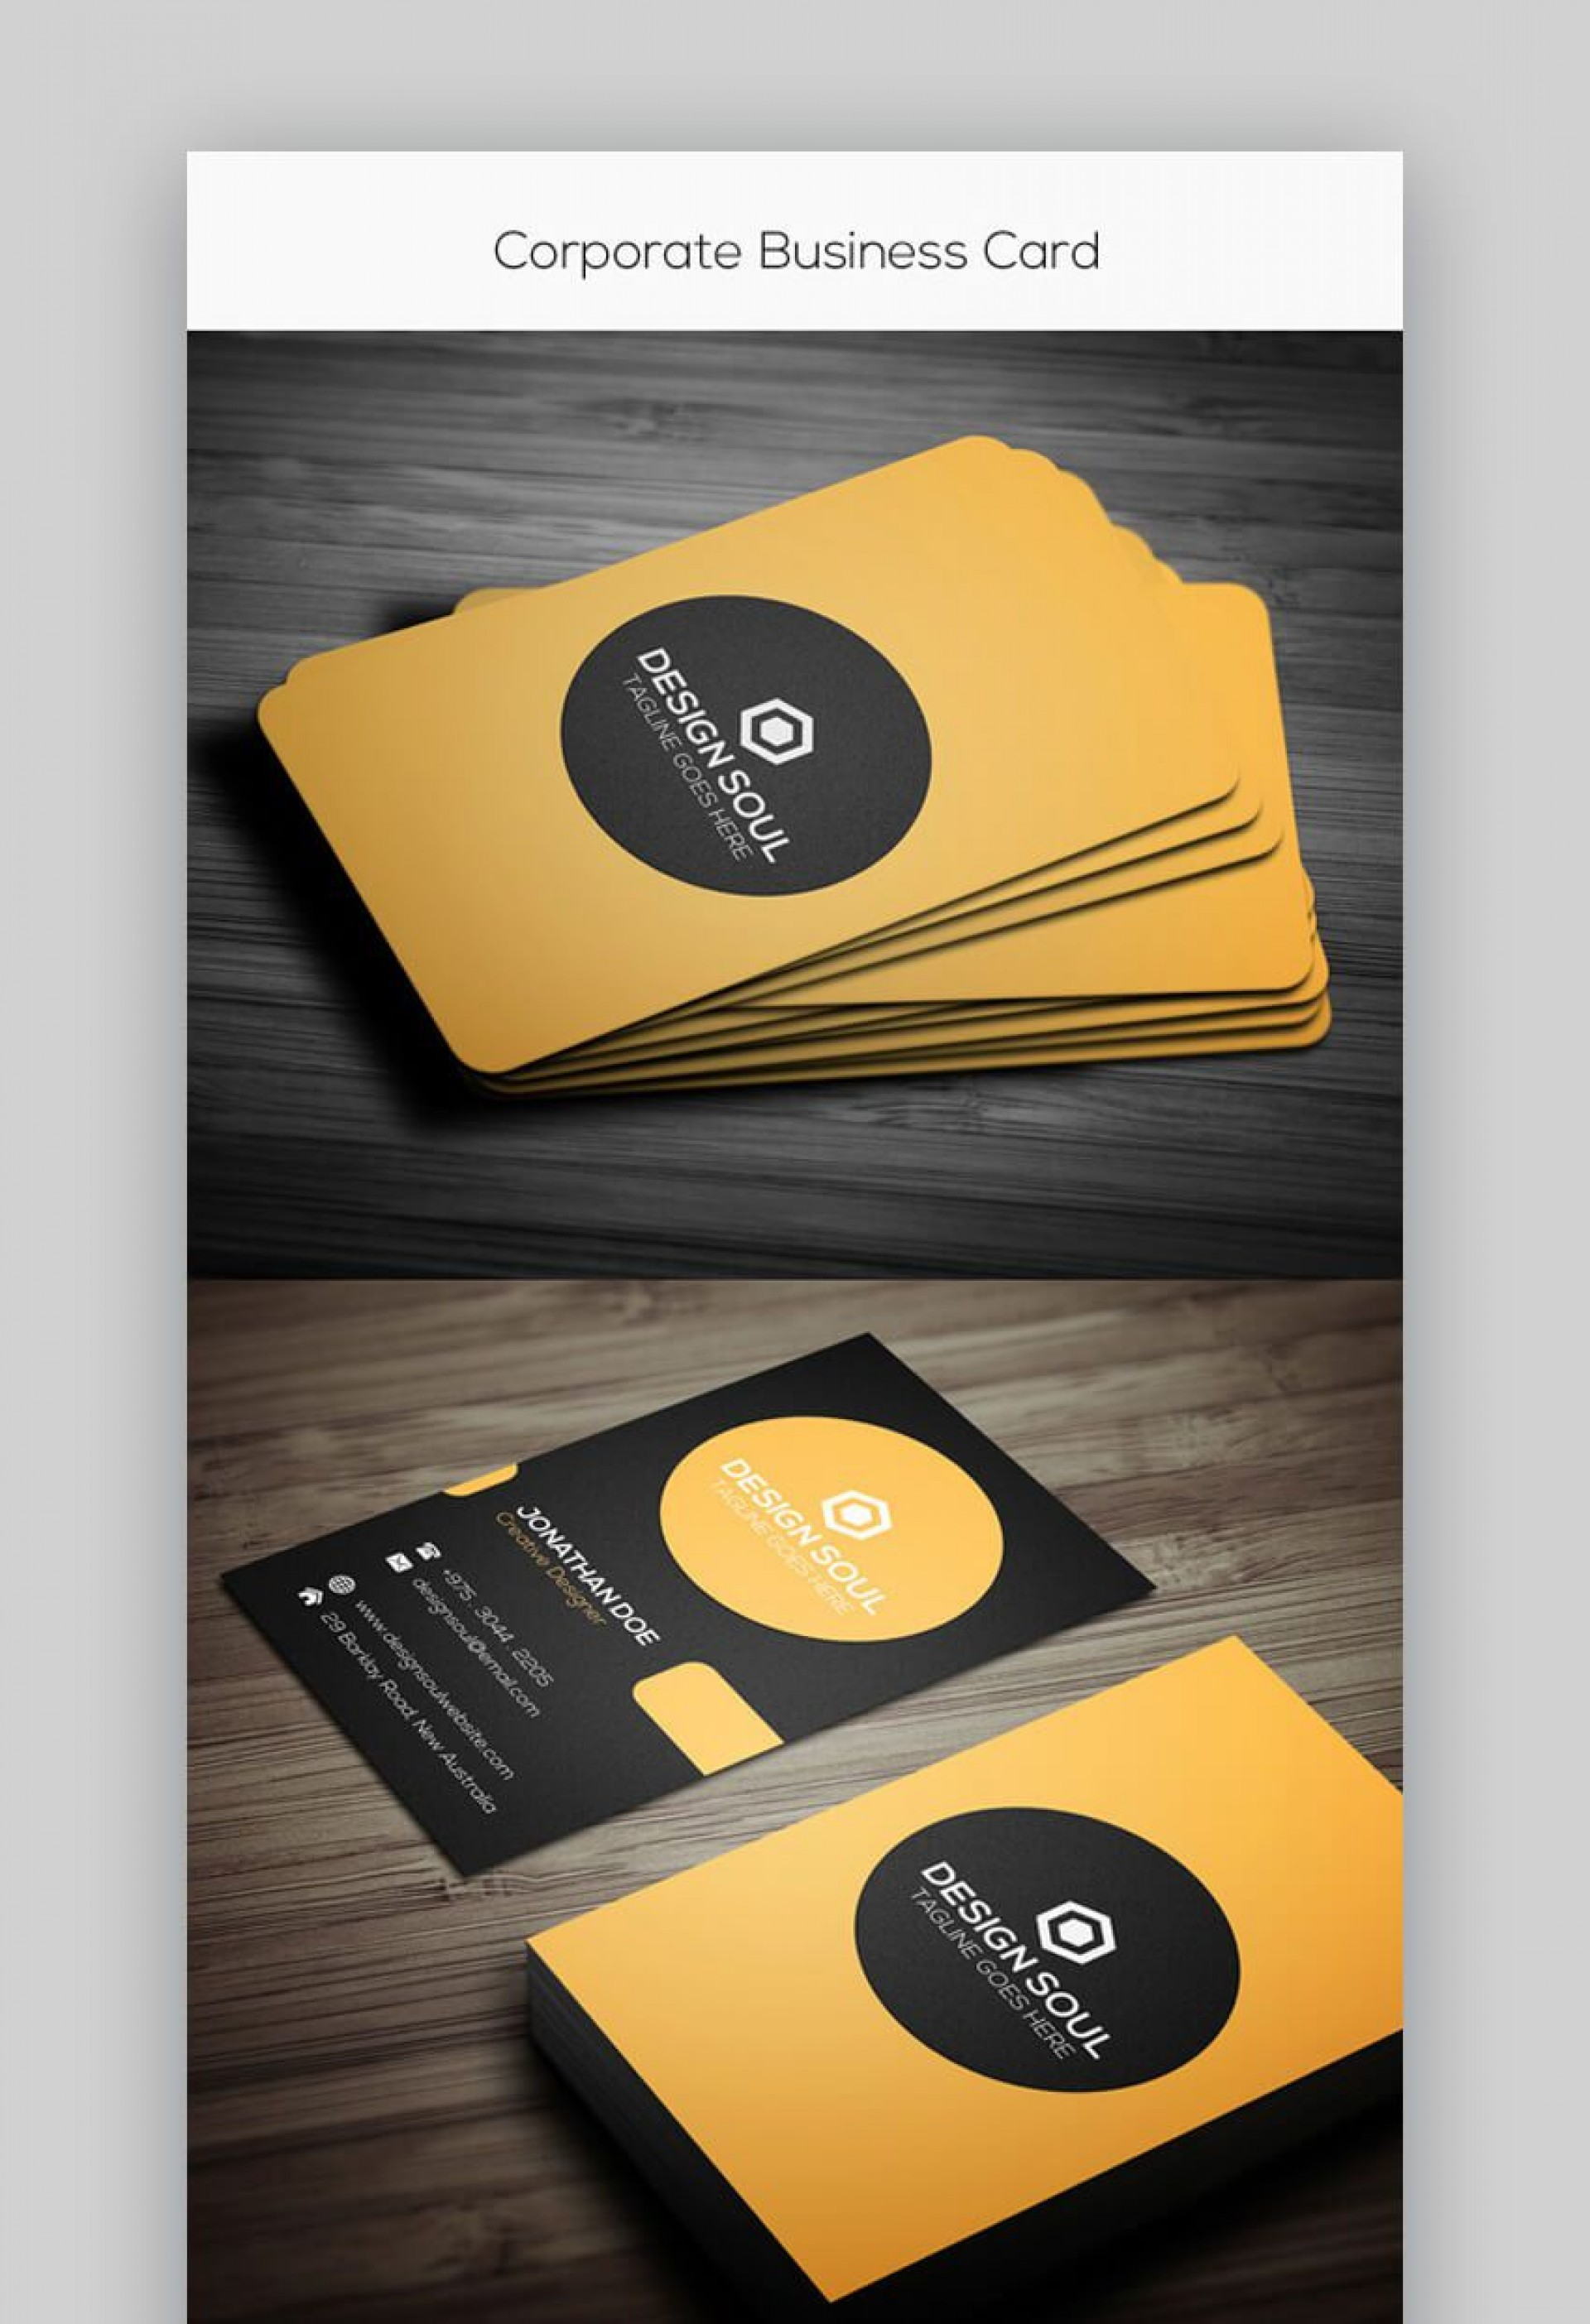 000 Best Simple Visiting Card Design Psd Idea  Minimalist Busines Template Free File Download In Photoshop1920